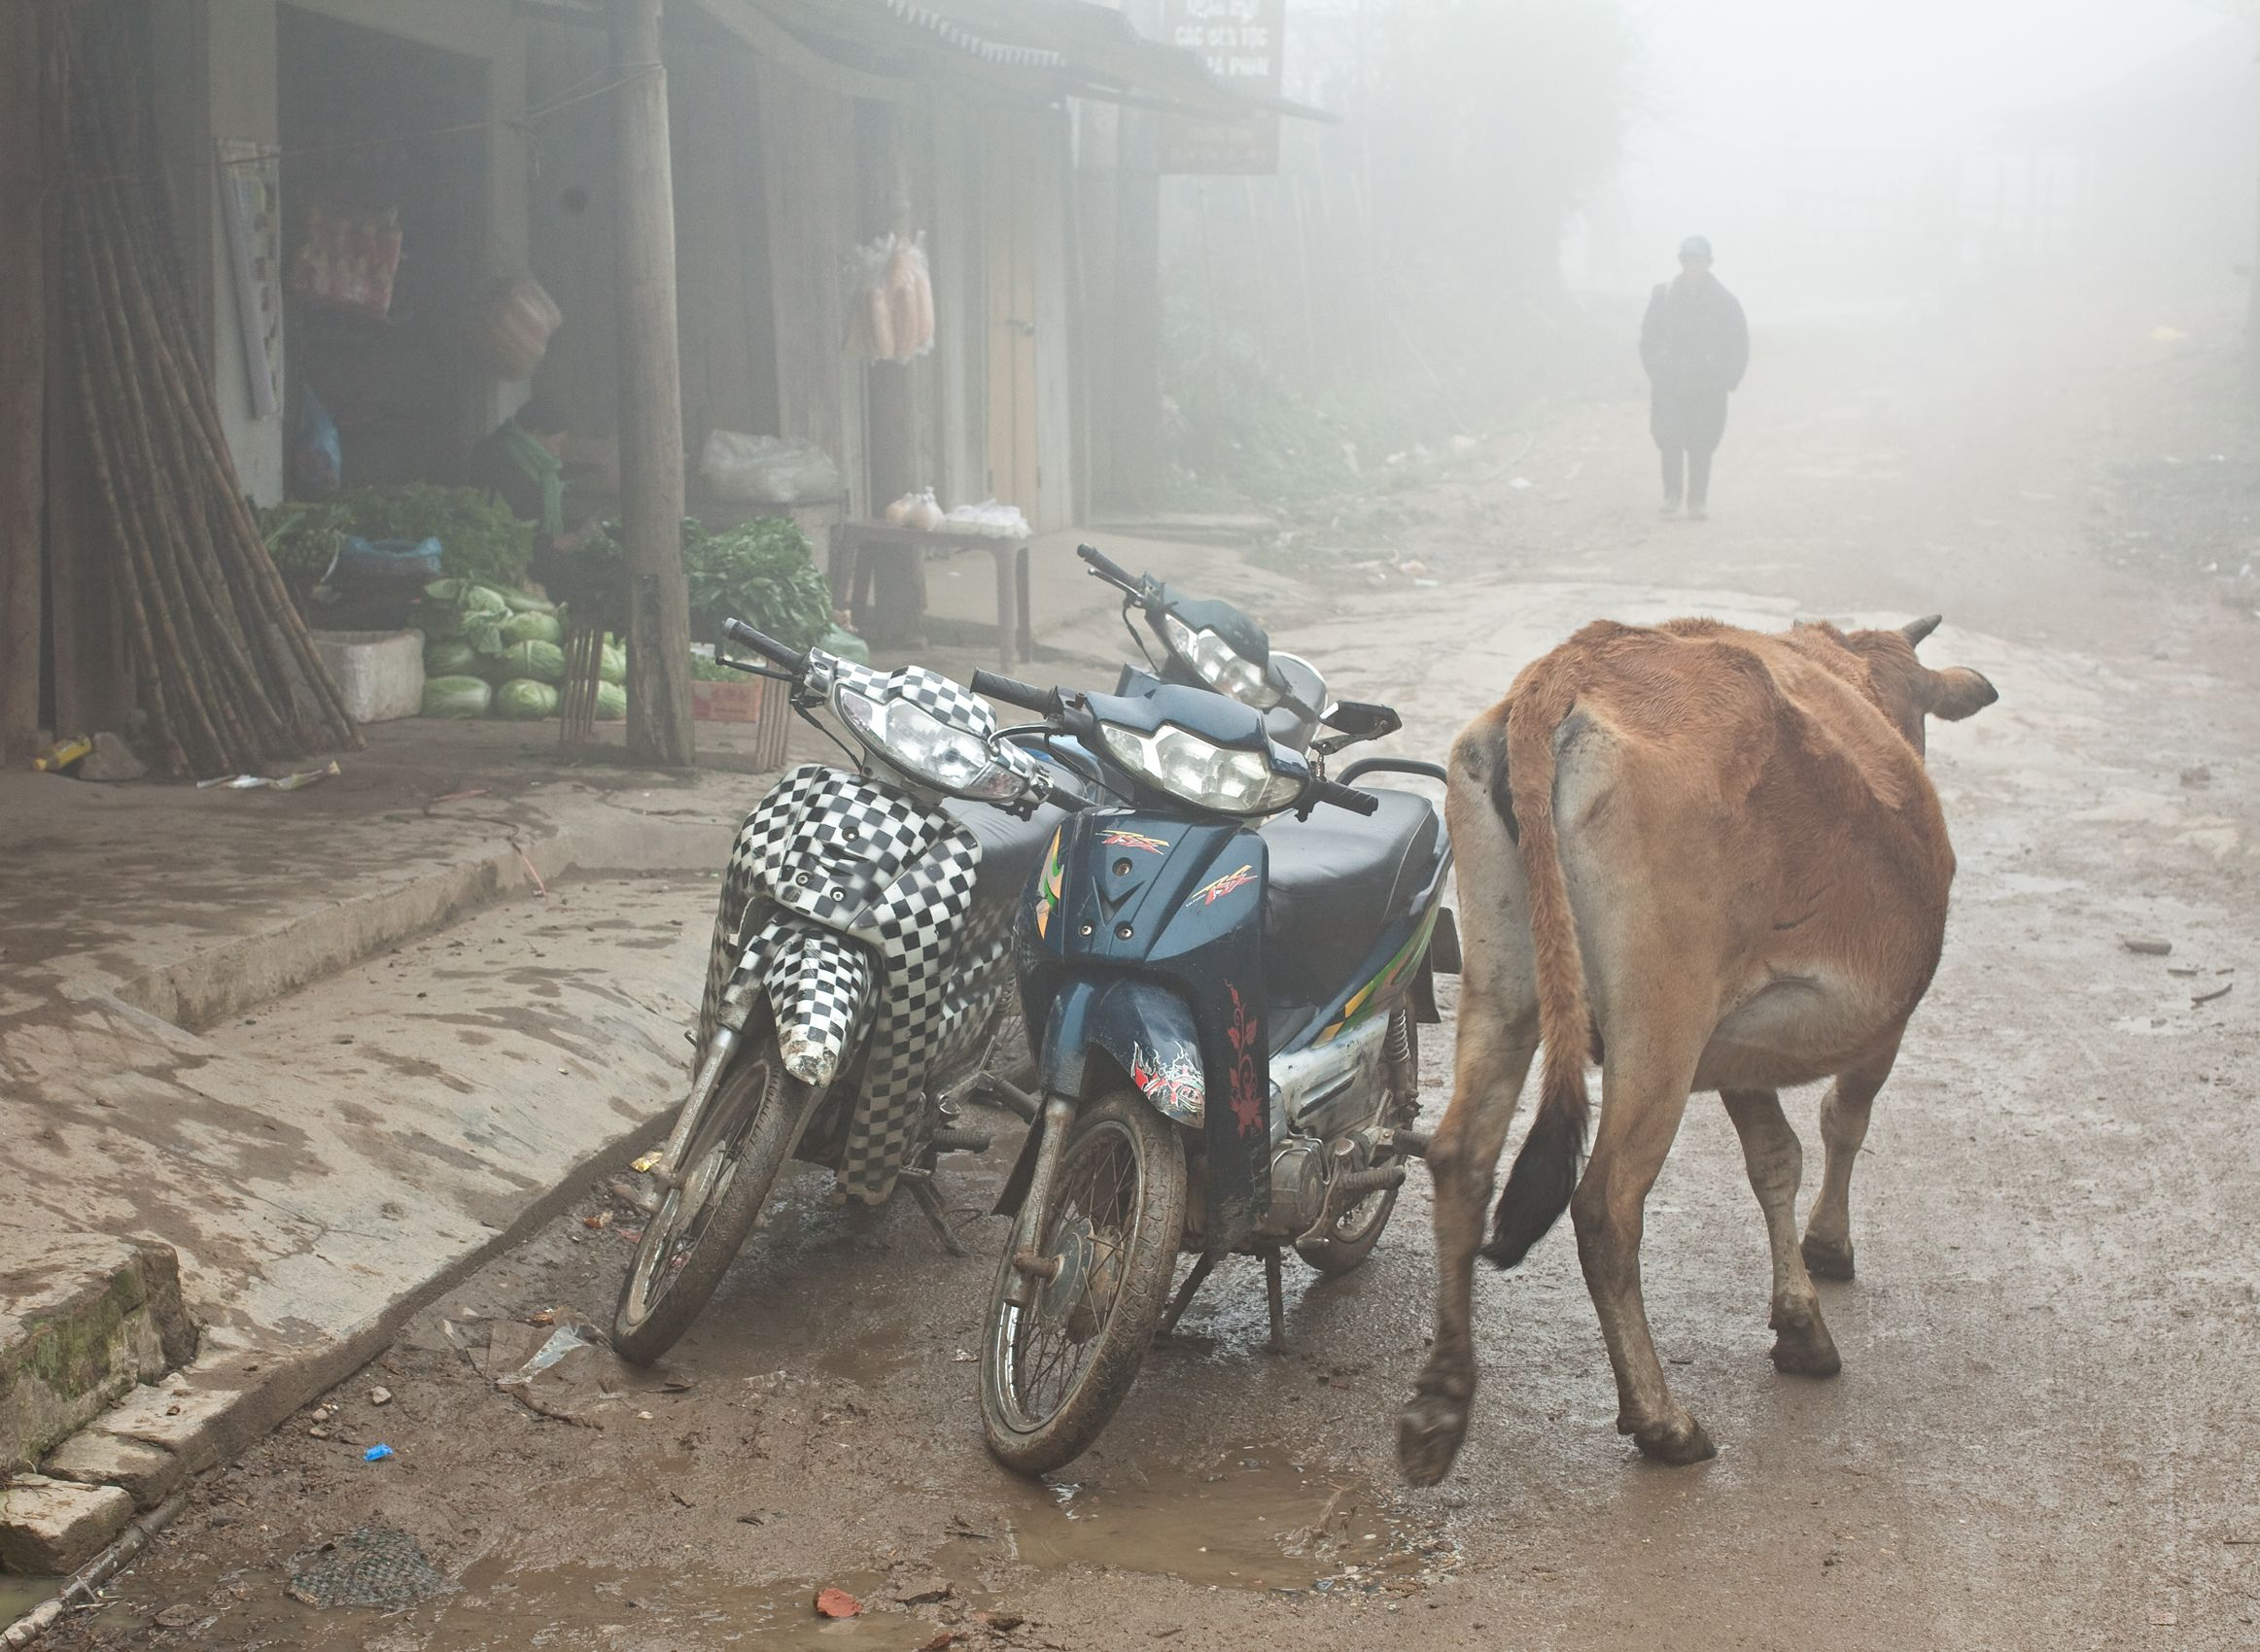 8932-Cows-and-Motorbikes_Red-Dzao.jpg